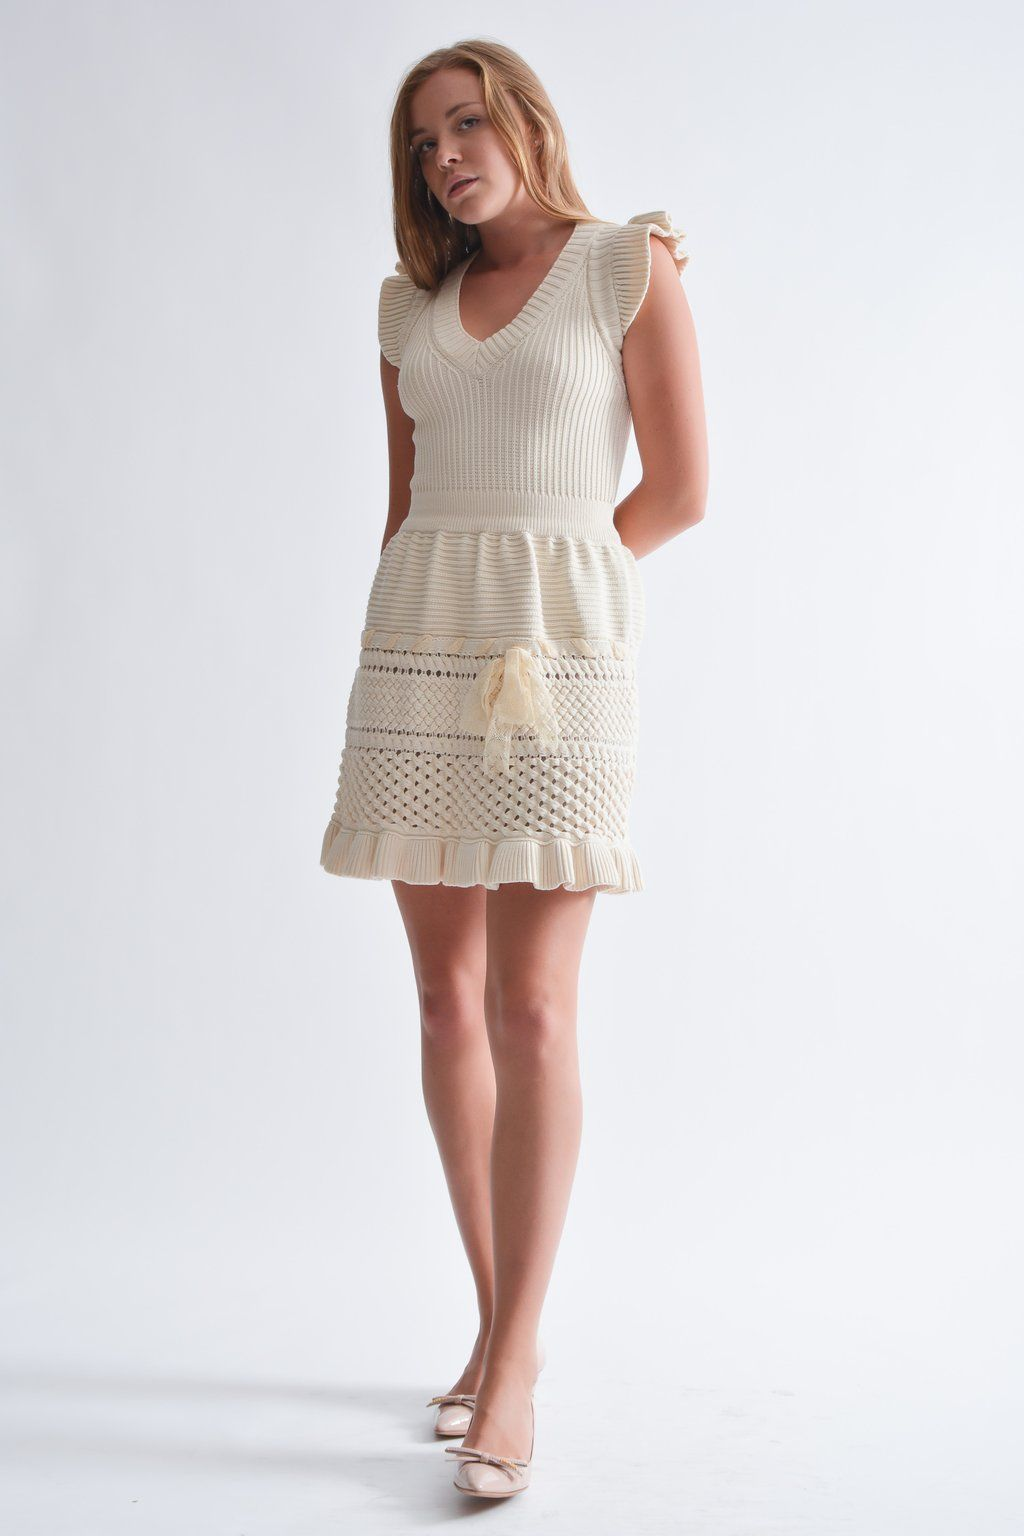 249cb3a2ecb Red Valentino Cream Knit Dress  MineAndYours